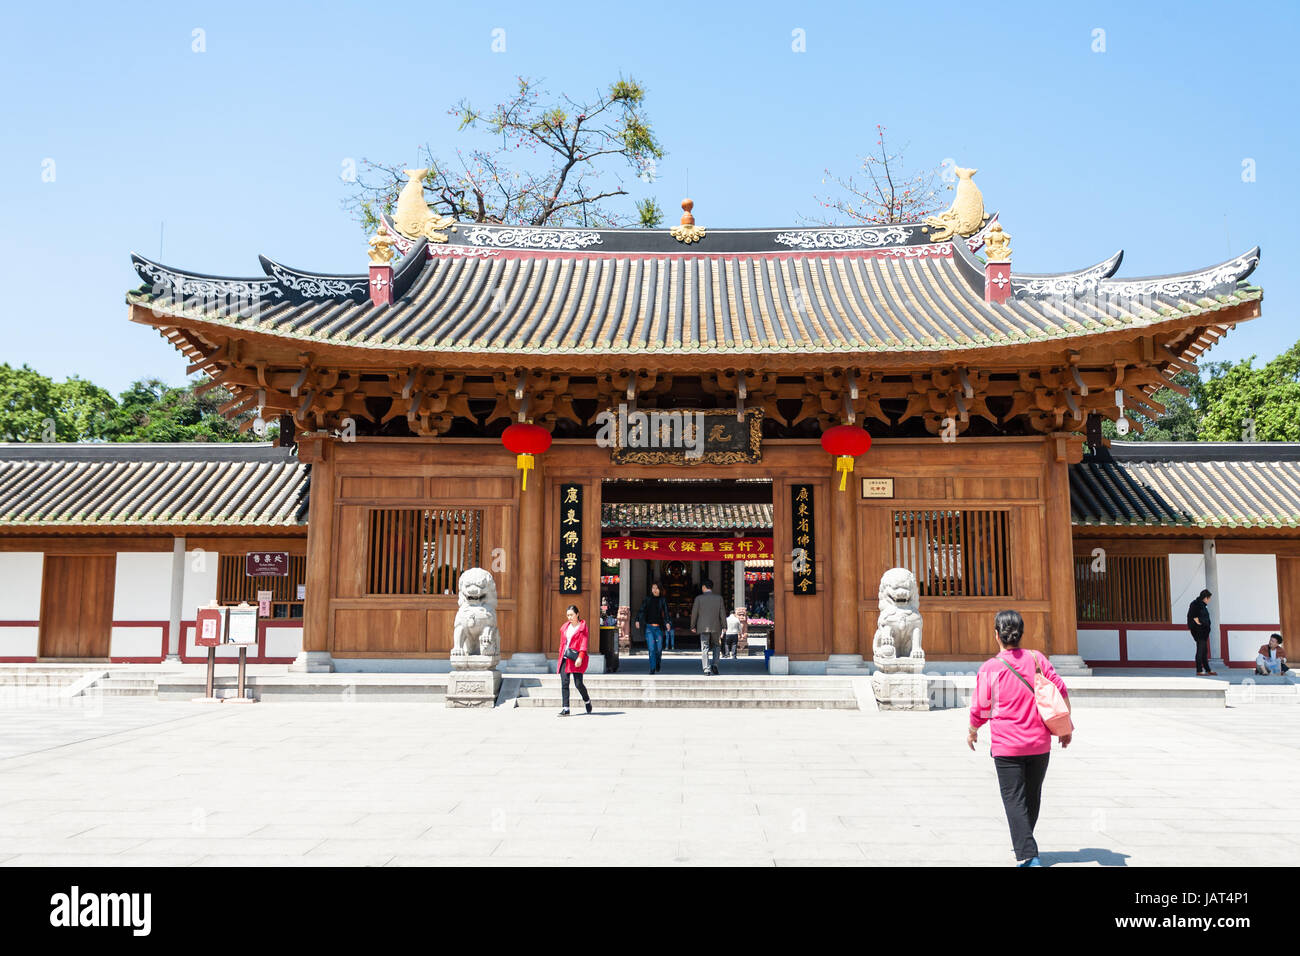 GUANGZHOU, CHINA - APRIL 1, 2017: people near entrance to Guangxiao Temple (Bright Obedience, Bright Filial Piety - Stock Image